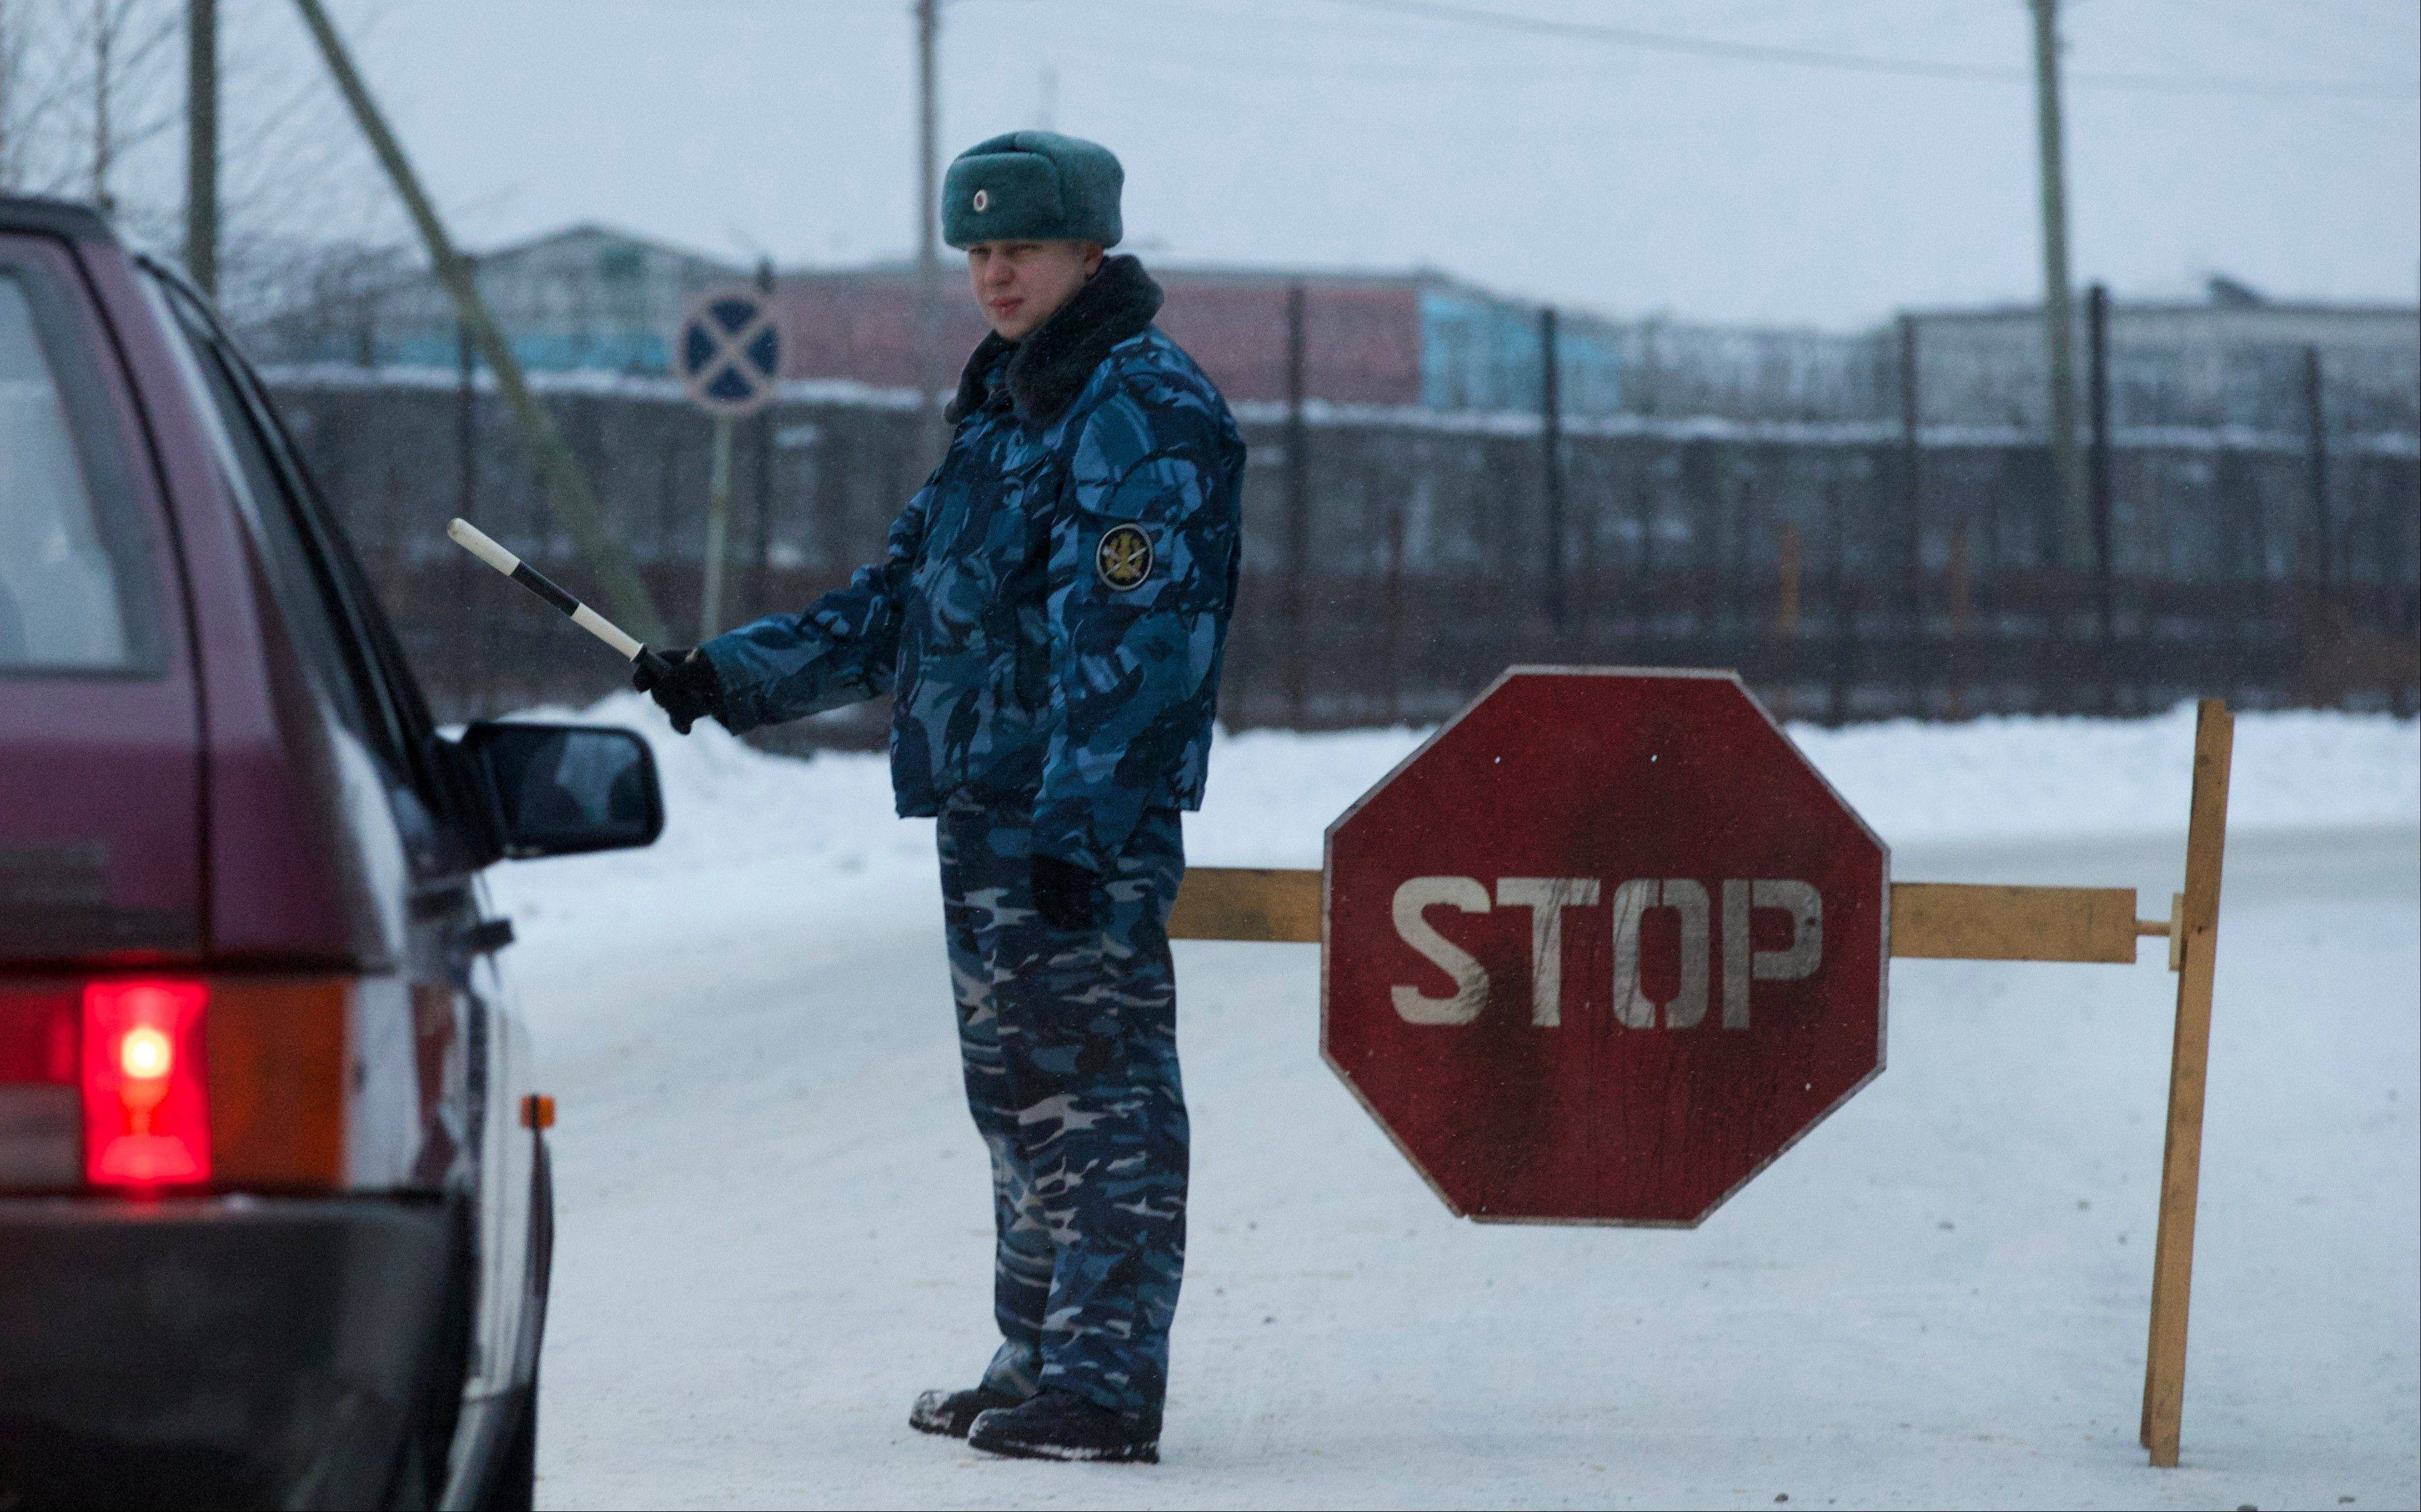 A prison service officer stops a car on the road at the prison where Mikhail Khodorkovsky was kept in Segezha, near Petrozavodsk, Russia, Friday, Dec. 20, 2013. Russia's once richest man Mikhail Khodorkovsky, the arch rival of President Vladimir Putin, has been released from prison after a decade behind bars, his spokeswoman told the Associated Press on Friday.